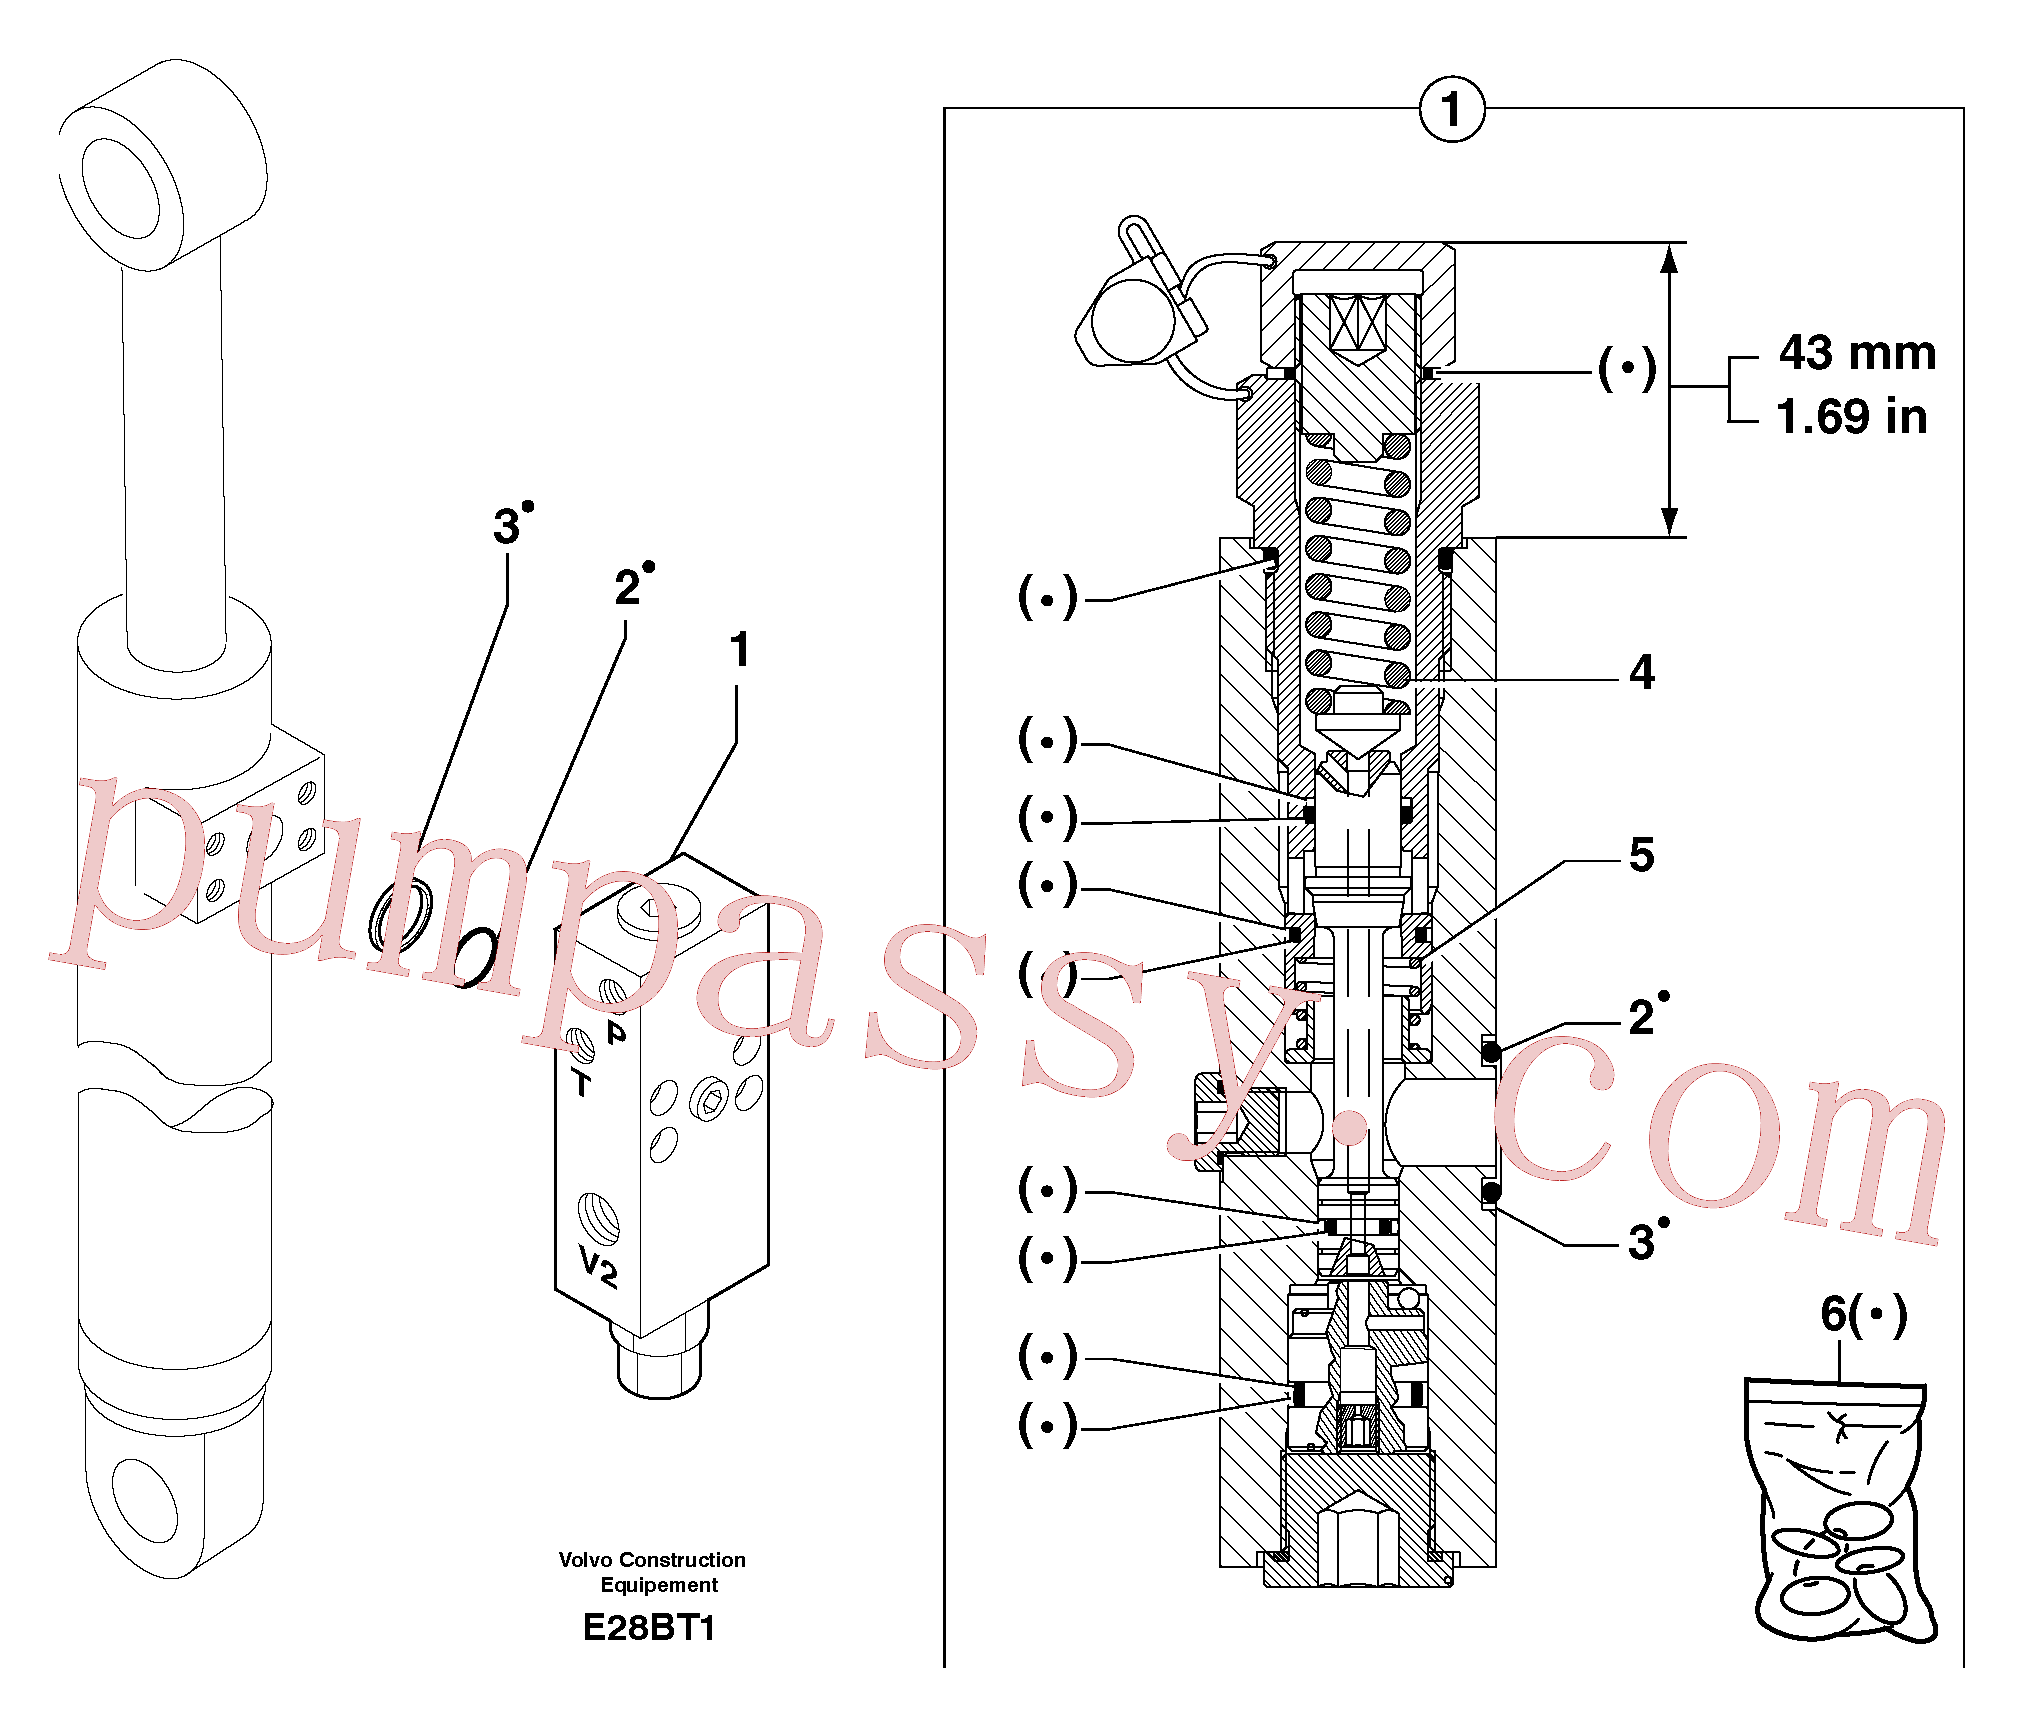 PJ7416941 for Volvo Safety valve ( dipper arm cylinder )(E28BT1 assembly)